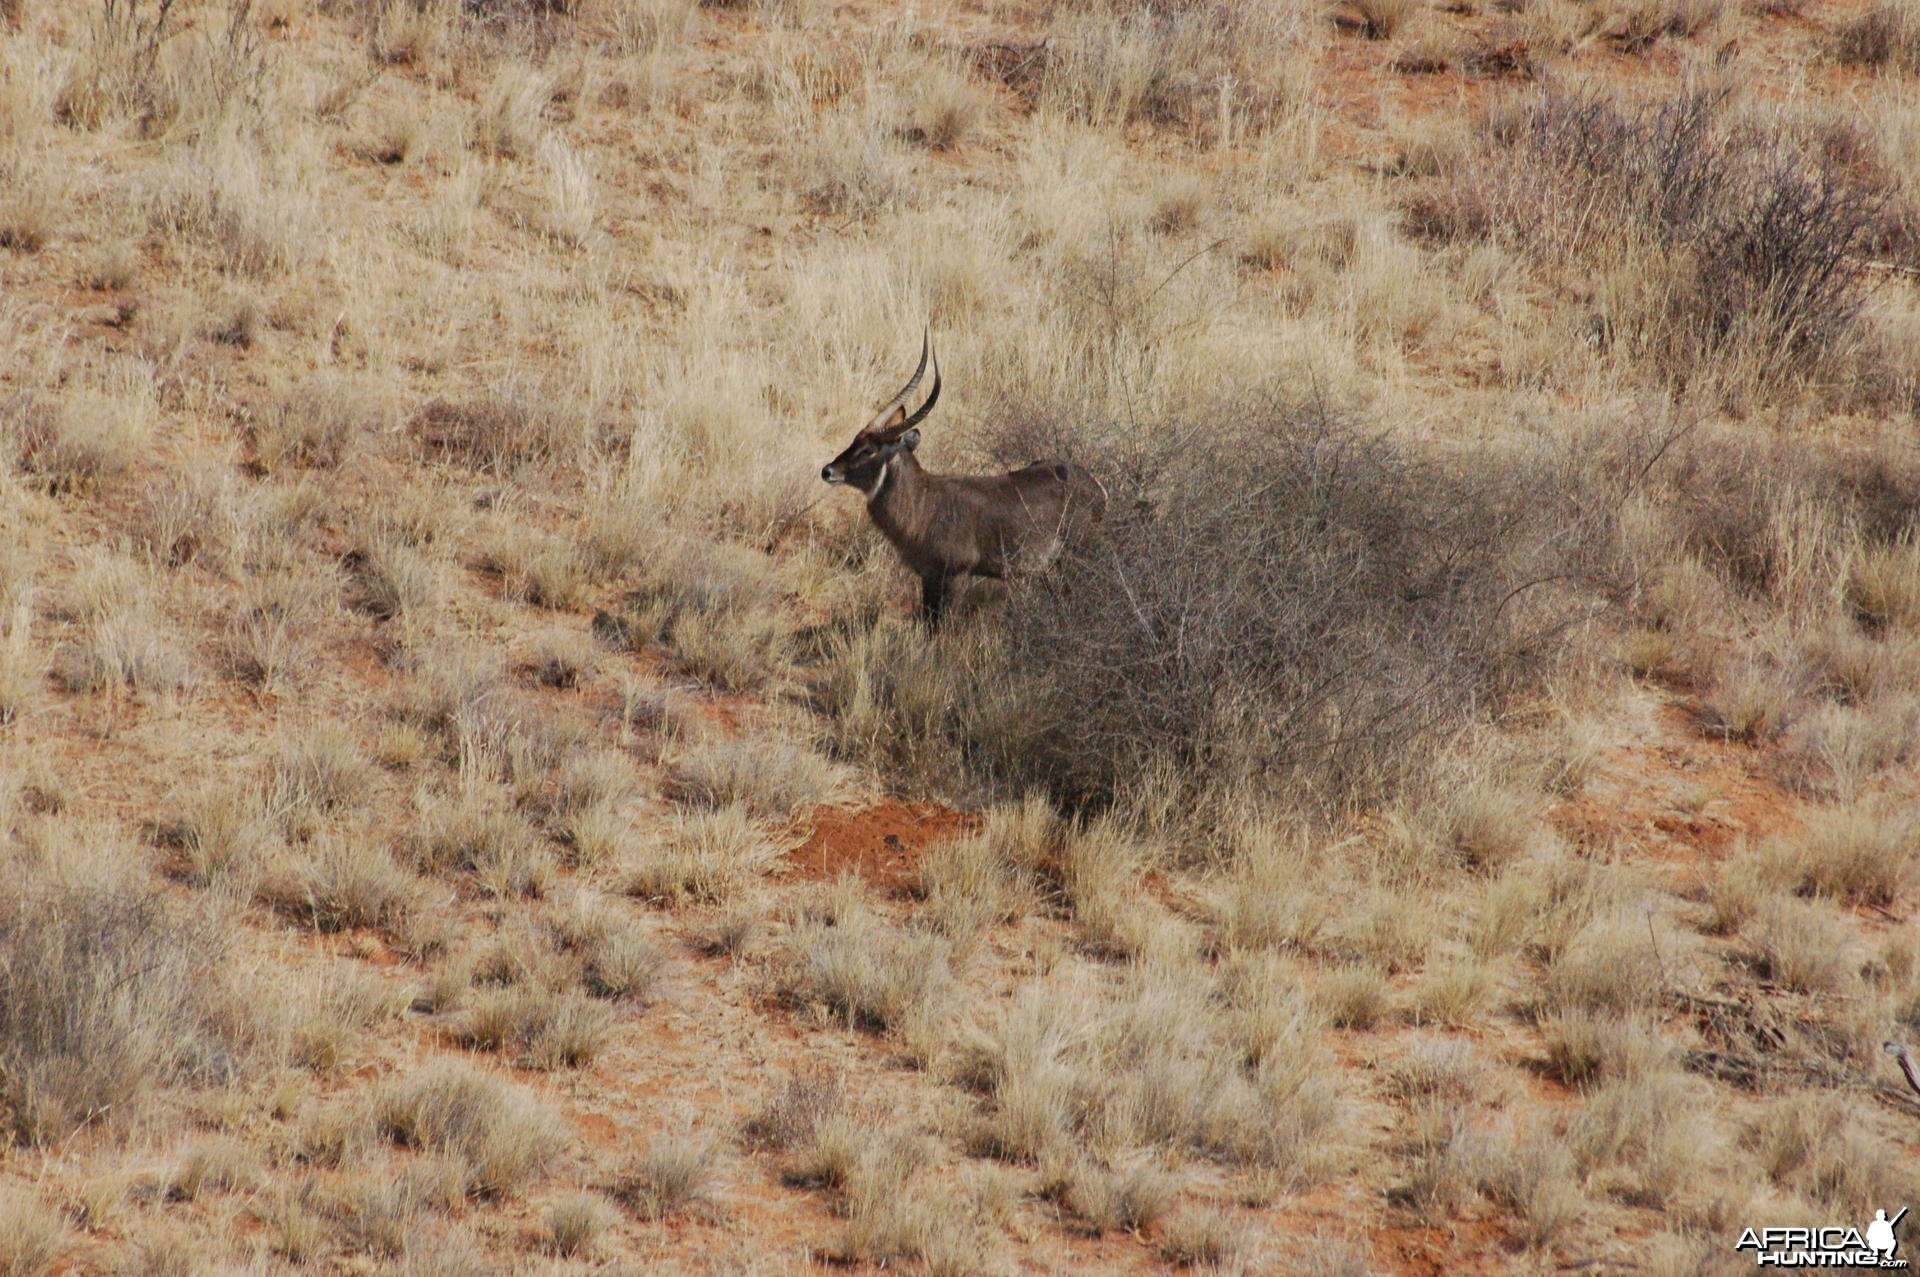 Waterbuck in Namibia